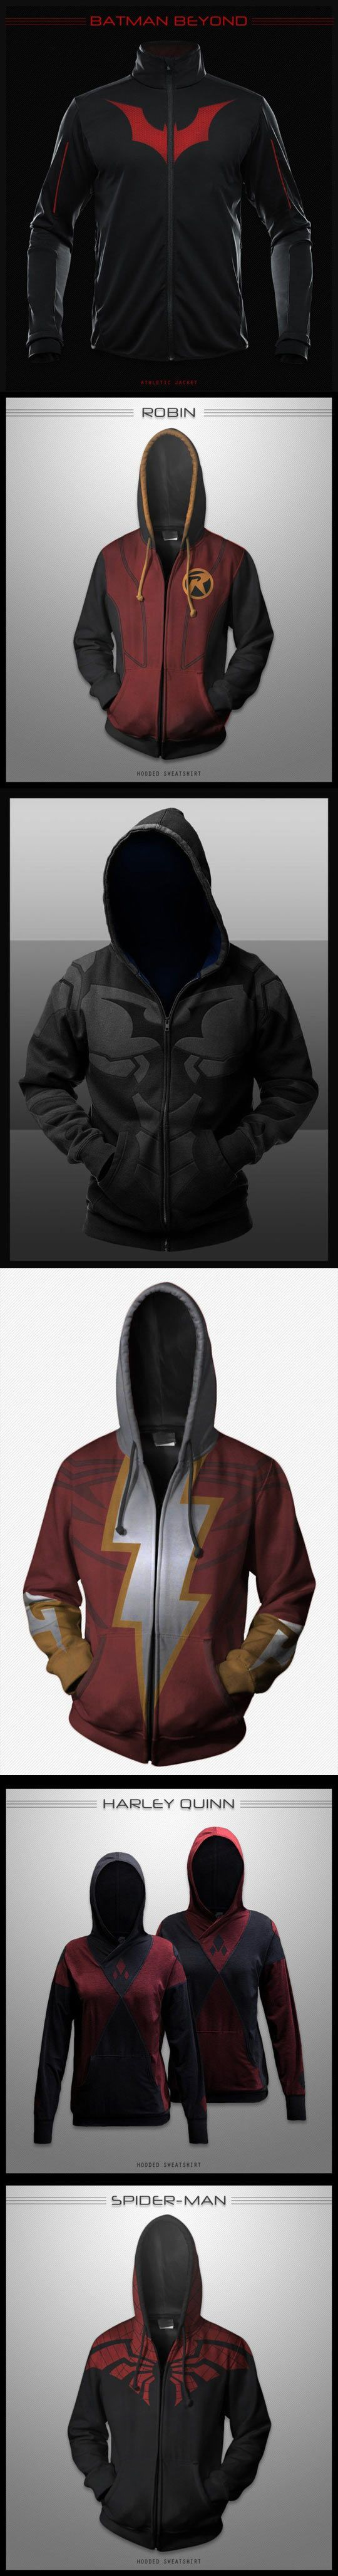 Amazing Concept Hoodies - Batman Beyond, Spiderman, Robin, Flash. I really like the Robin one.